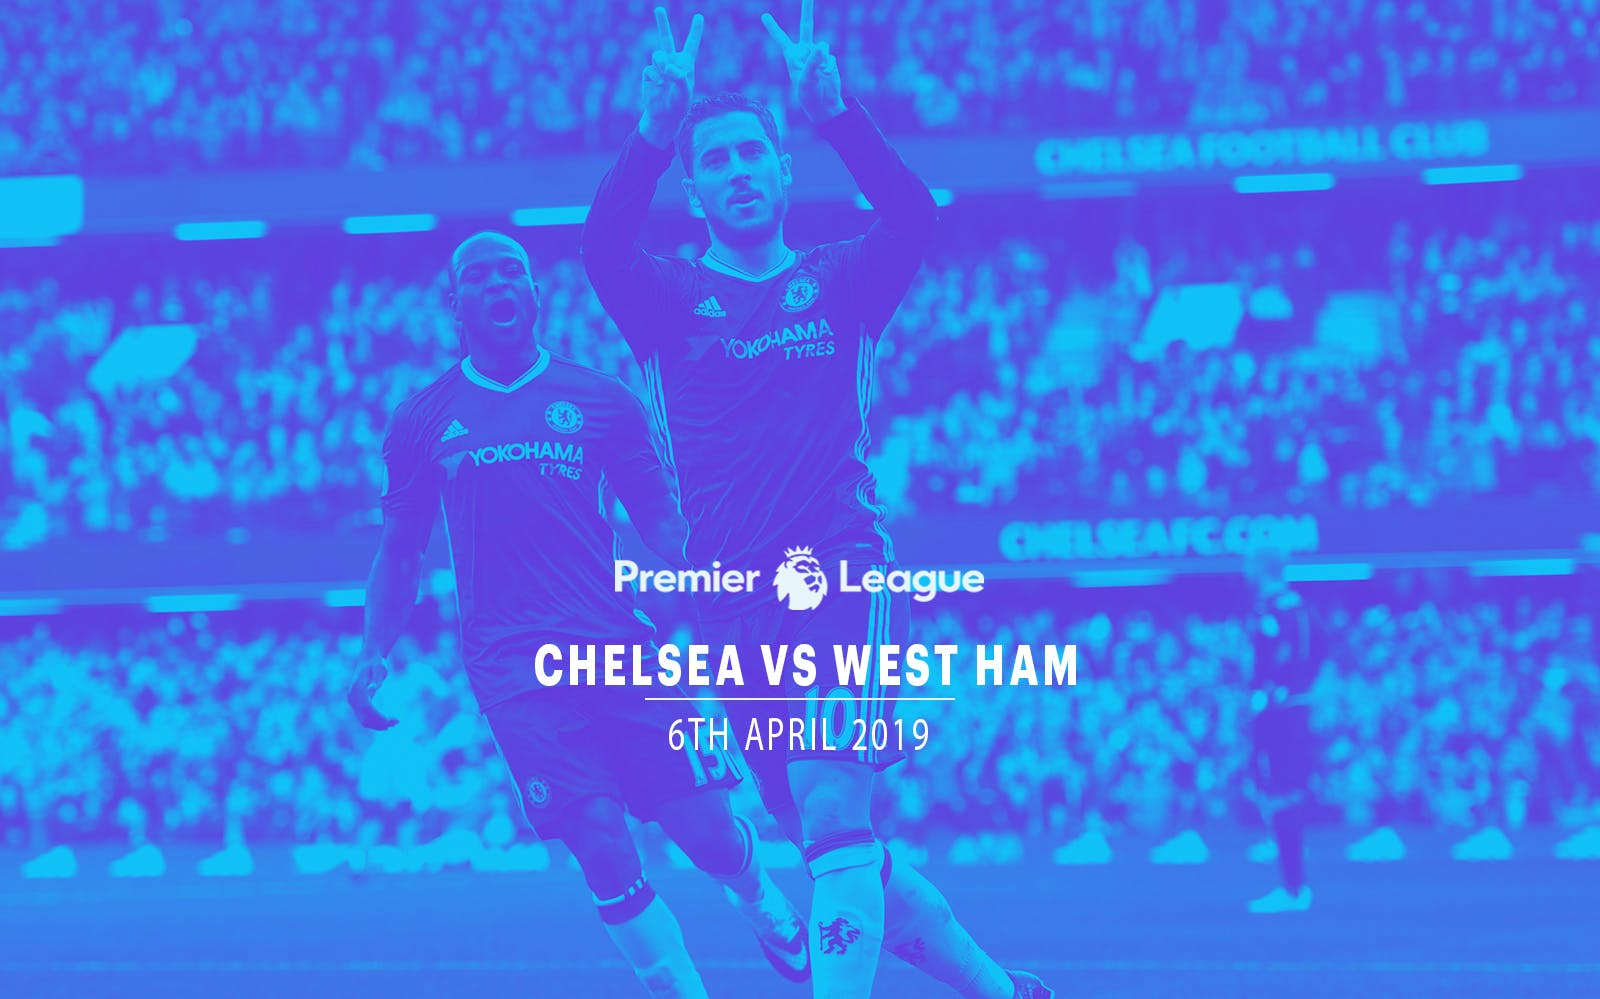 Chelsea vsWest Ham - 6th Apr'19